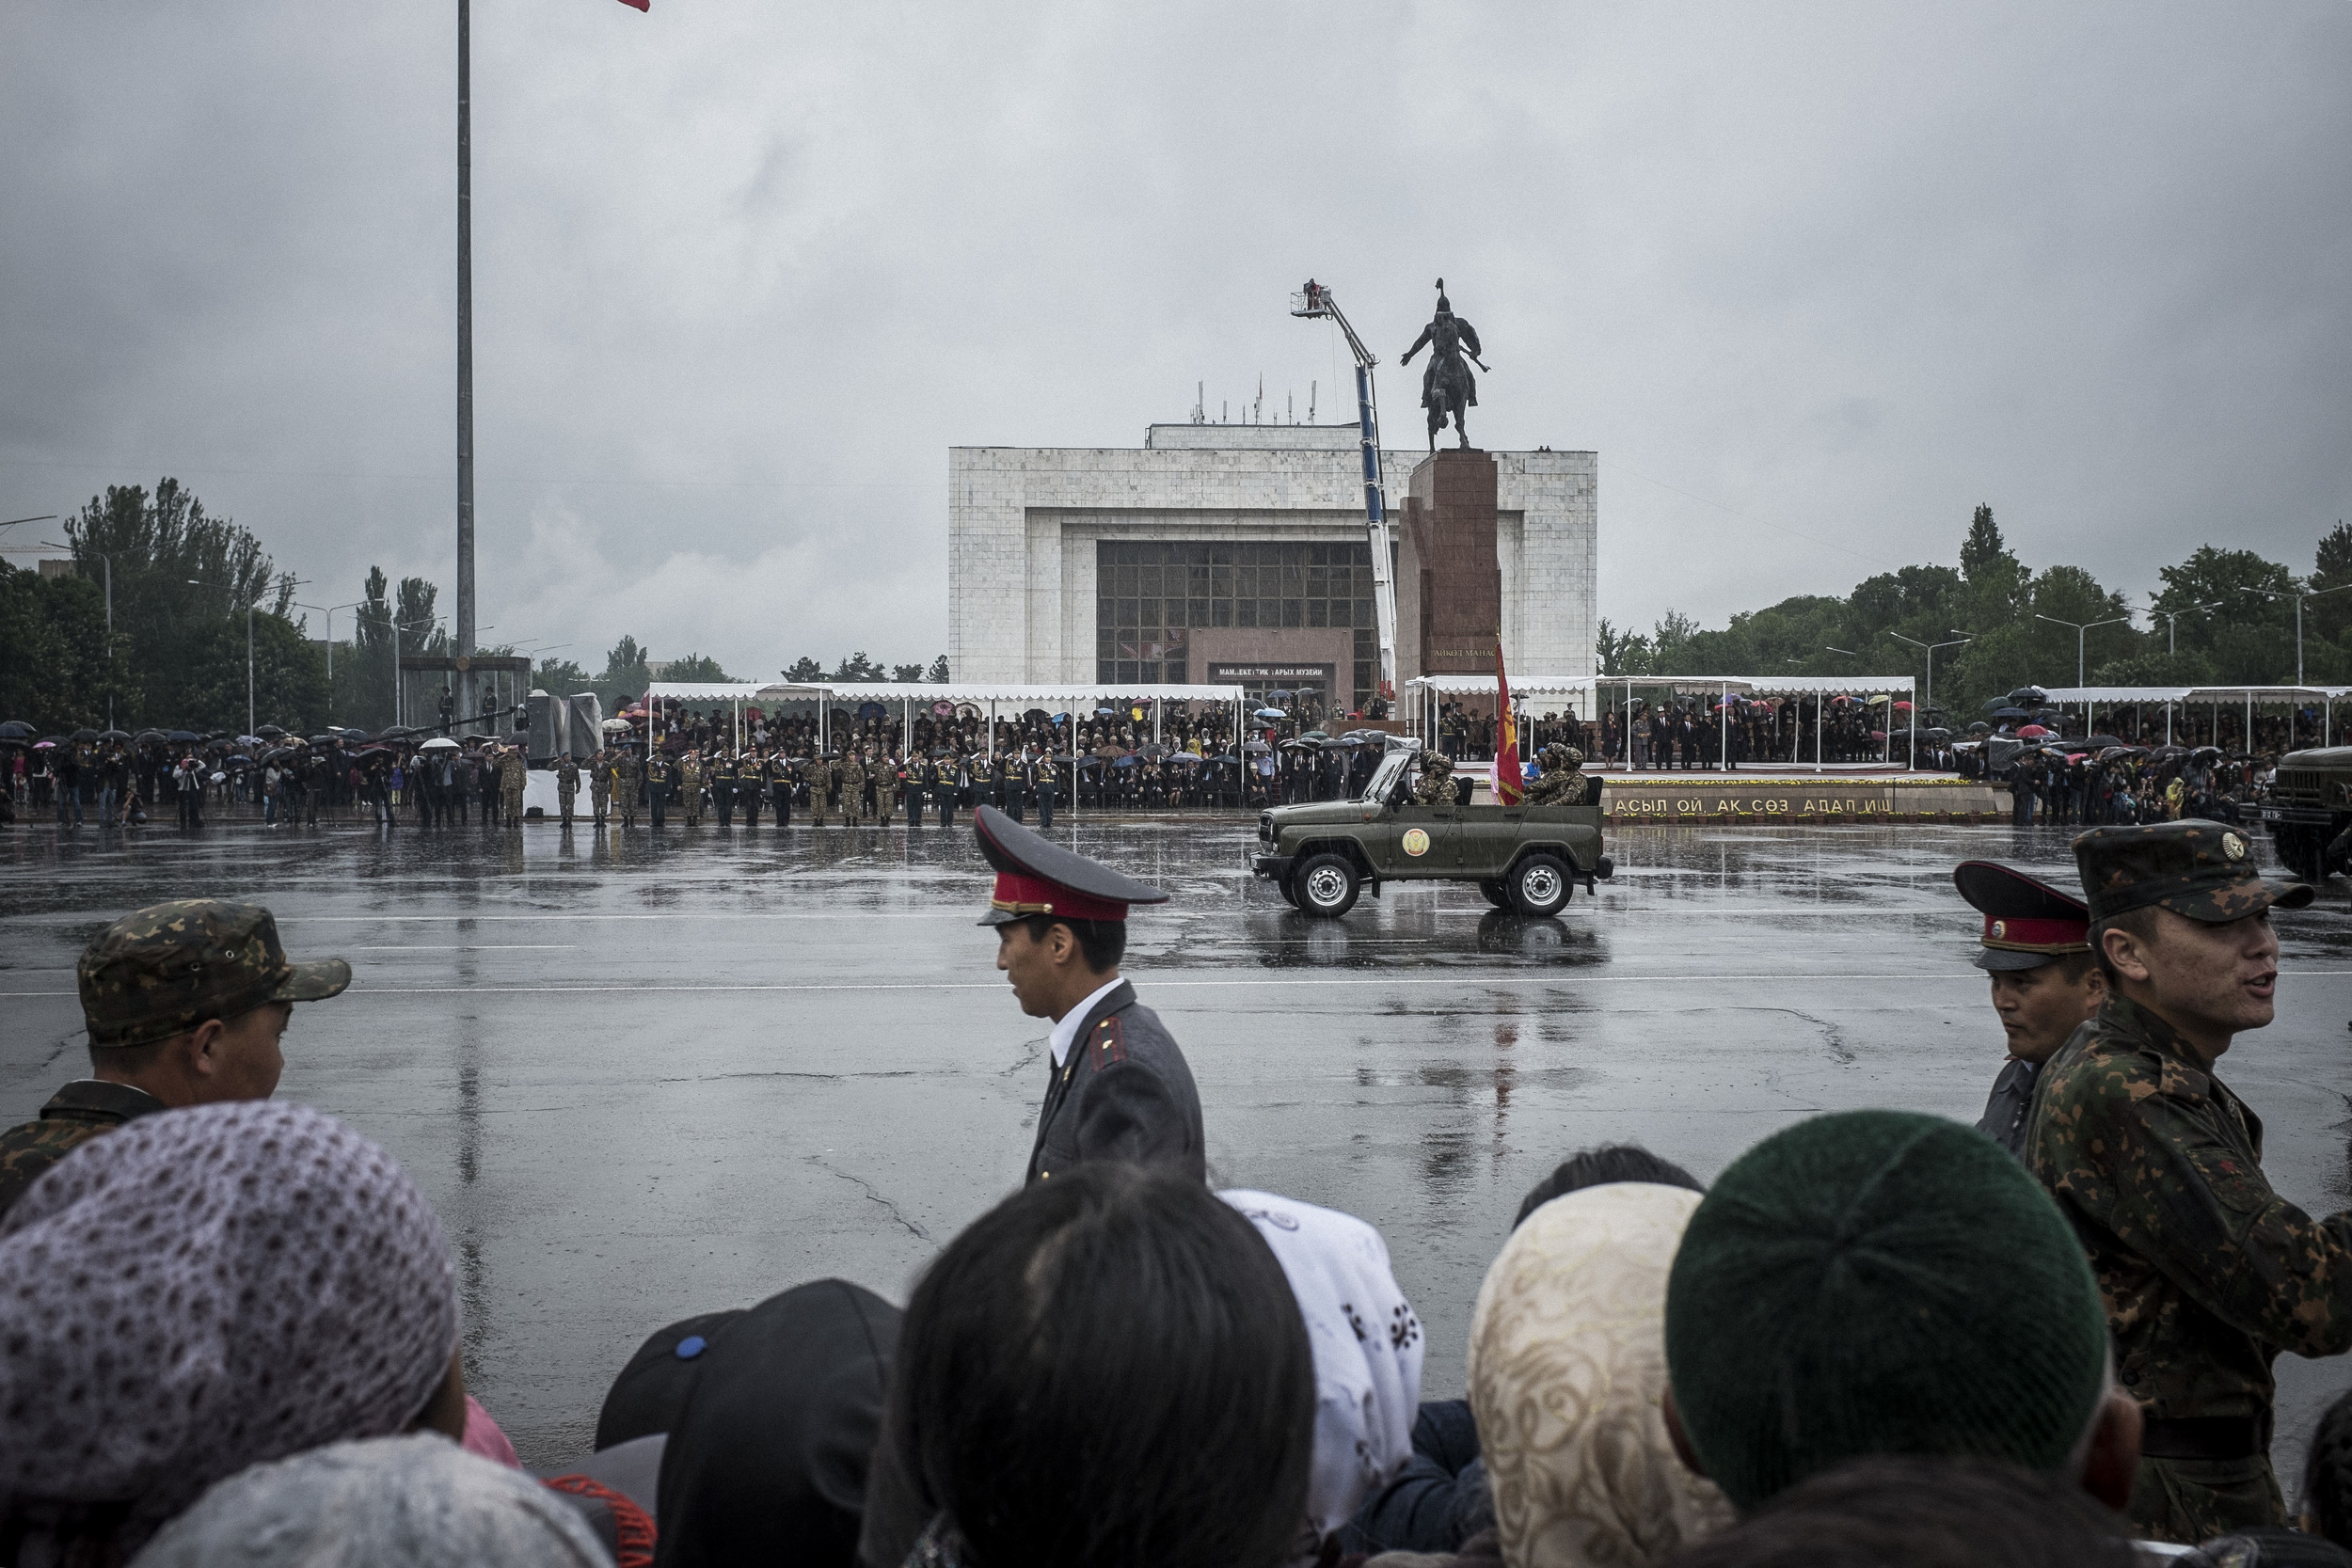 Kyrgyzstan celebrates the 70th anniversary of the Great Victory with military parade on the Capital's main Ala-too square. Bishkek, May 9, 2015.